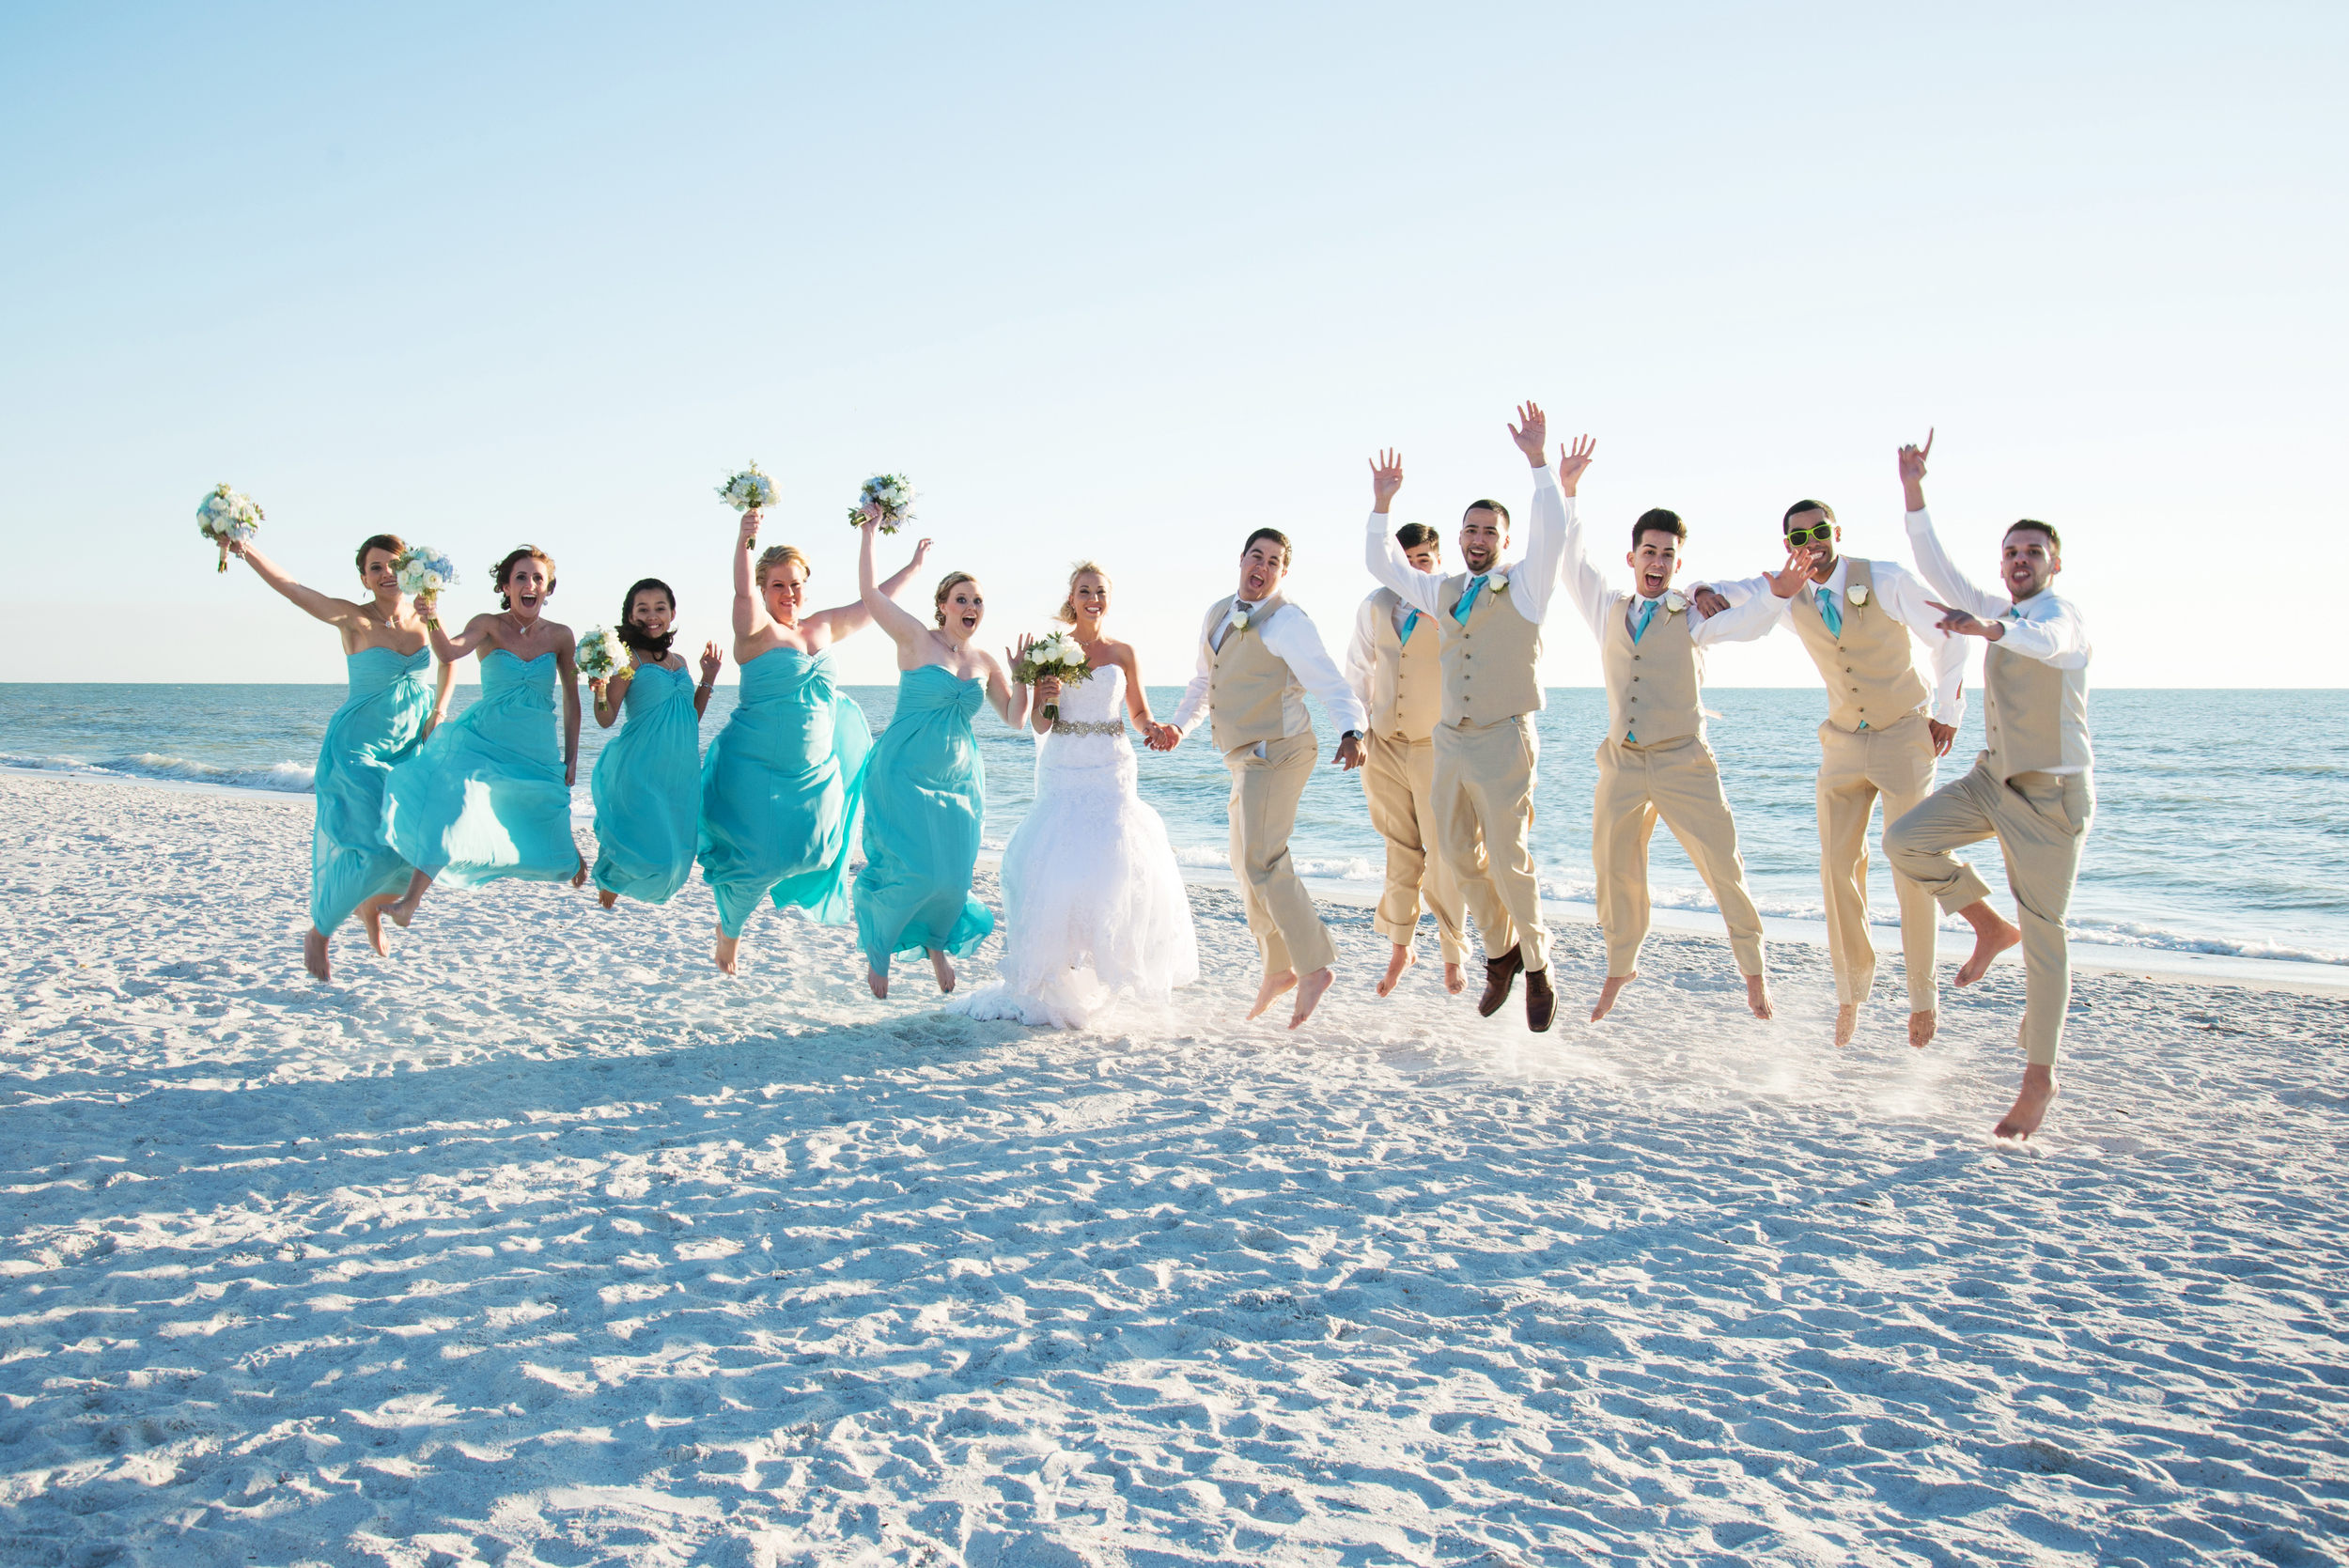 The wedding party sported shades of turquoise and khaki, perfect for a beach wedding